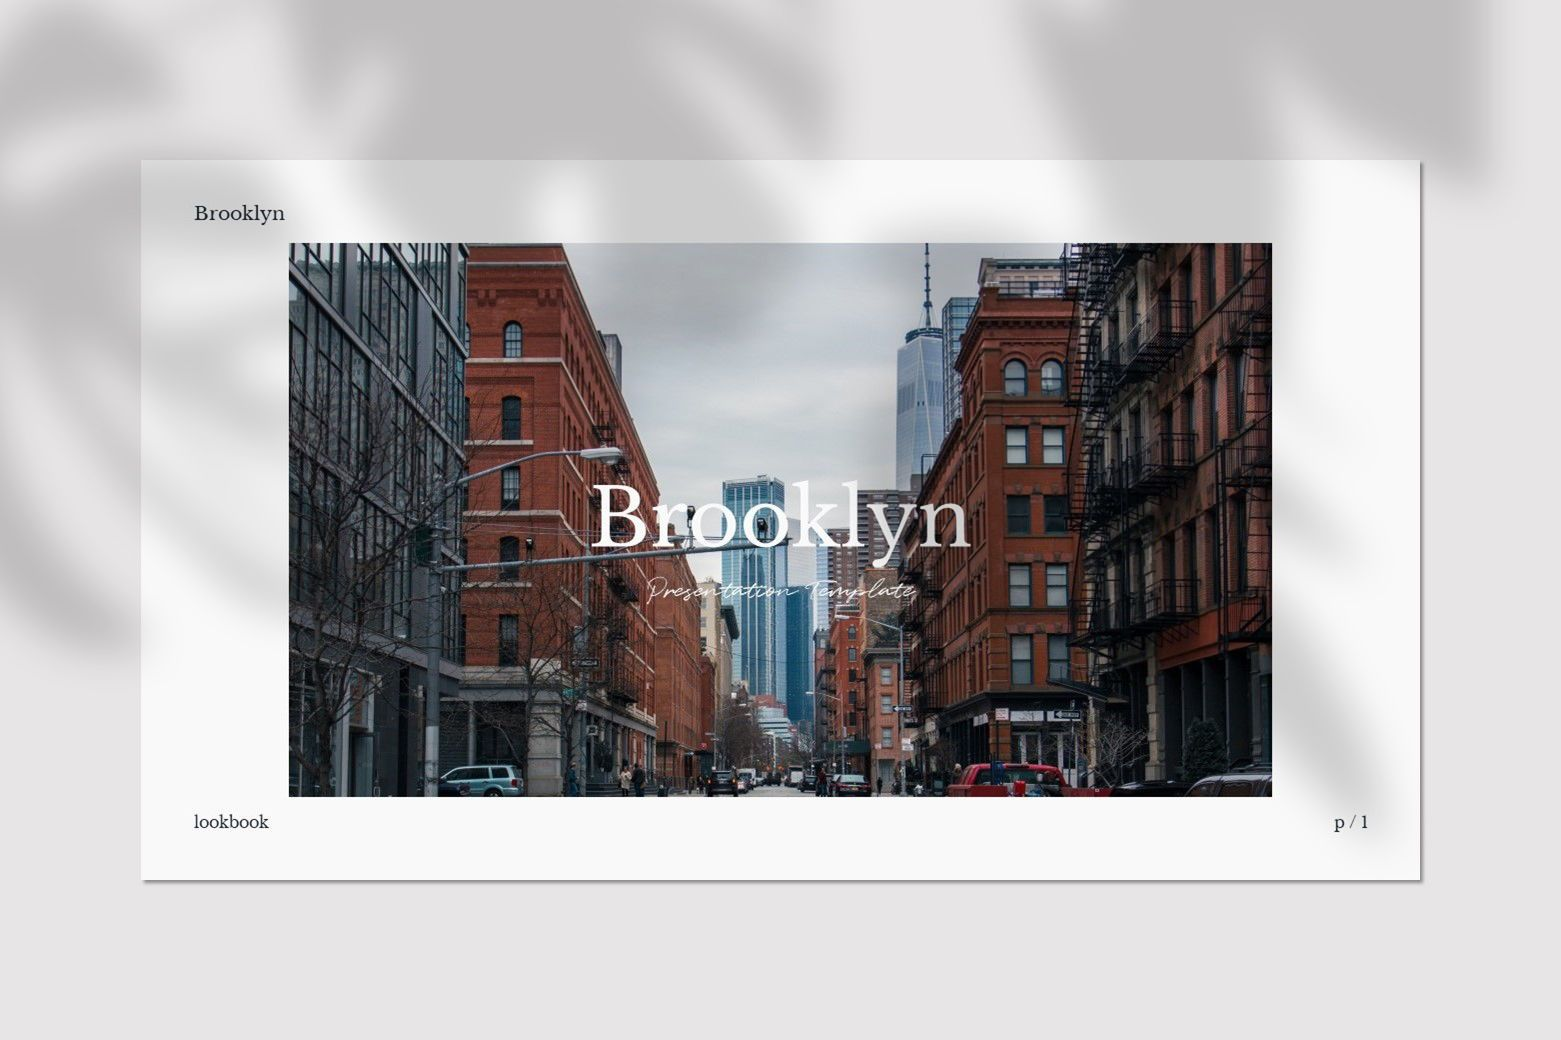 Brookly - Powerpoint Template, Slide 2, 07578, Presentation Templates — PoweredTemplate.com